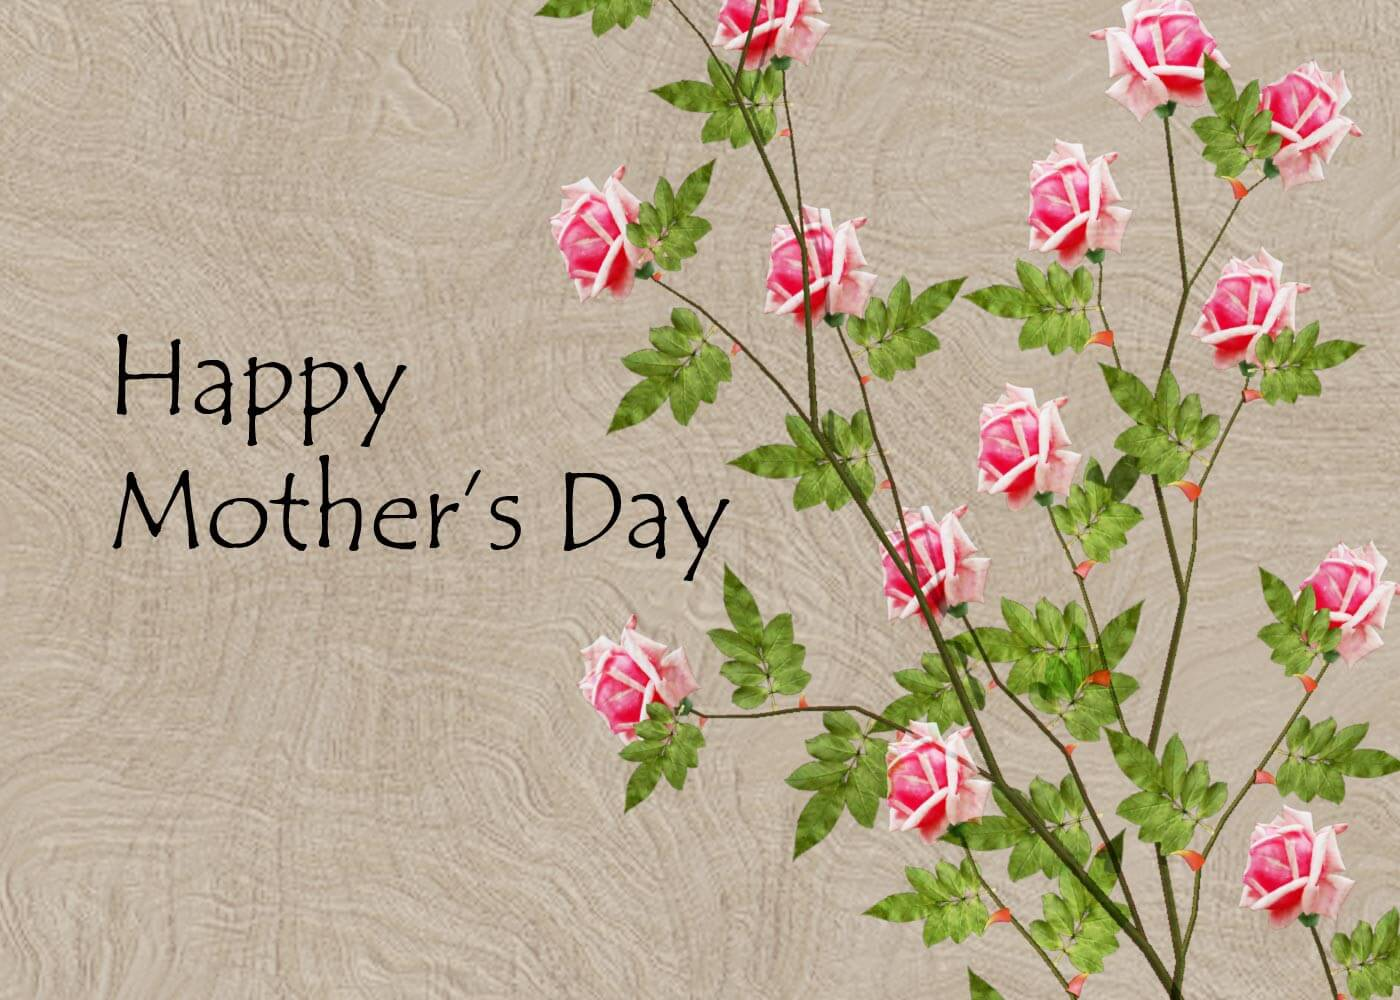 happy mothers day wishes greetings hd wallpaper